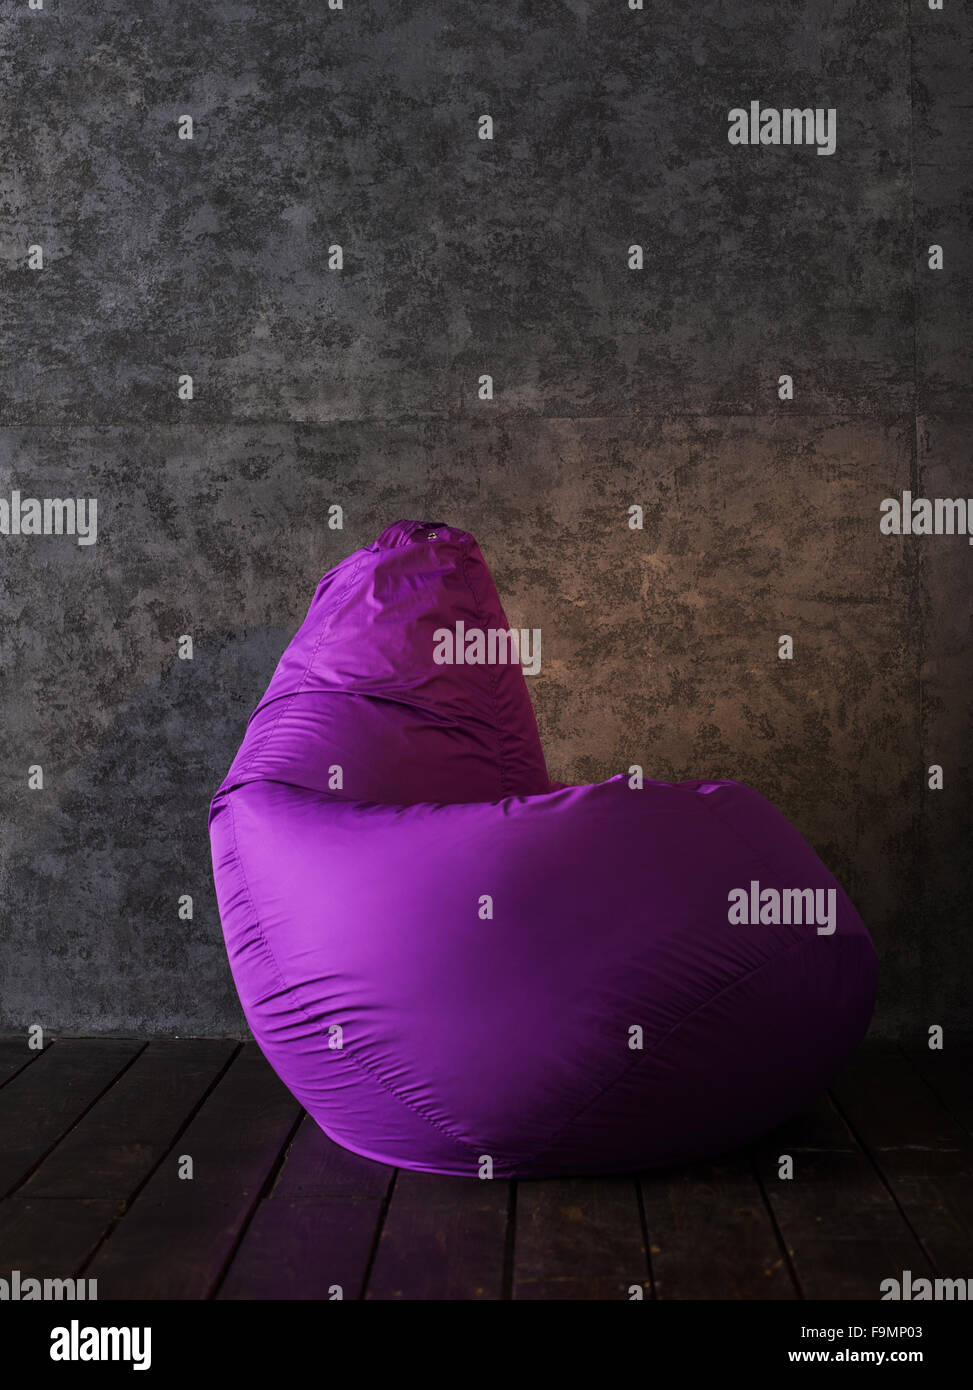 Beanbag at home or office - Stock Image